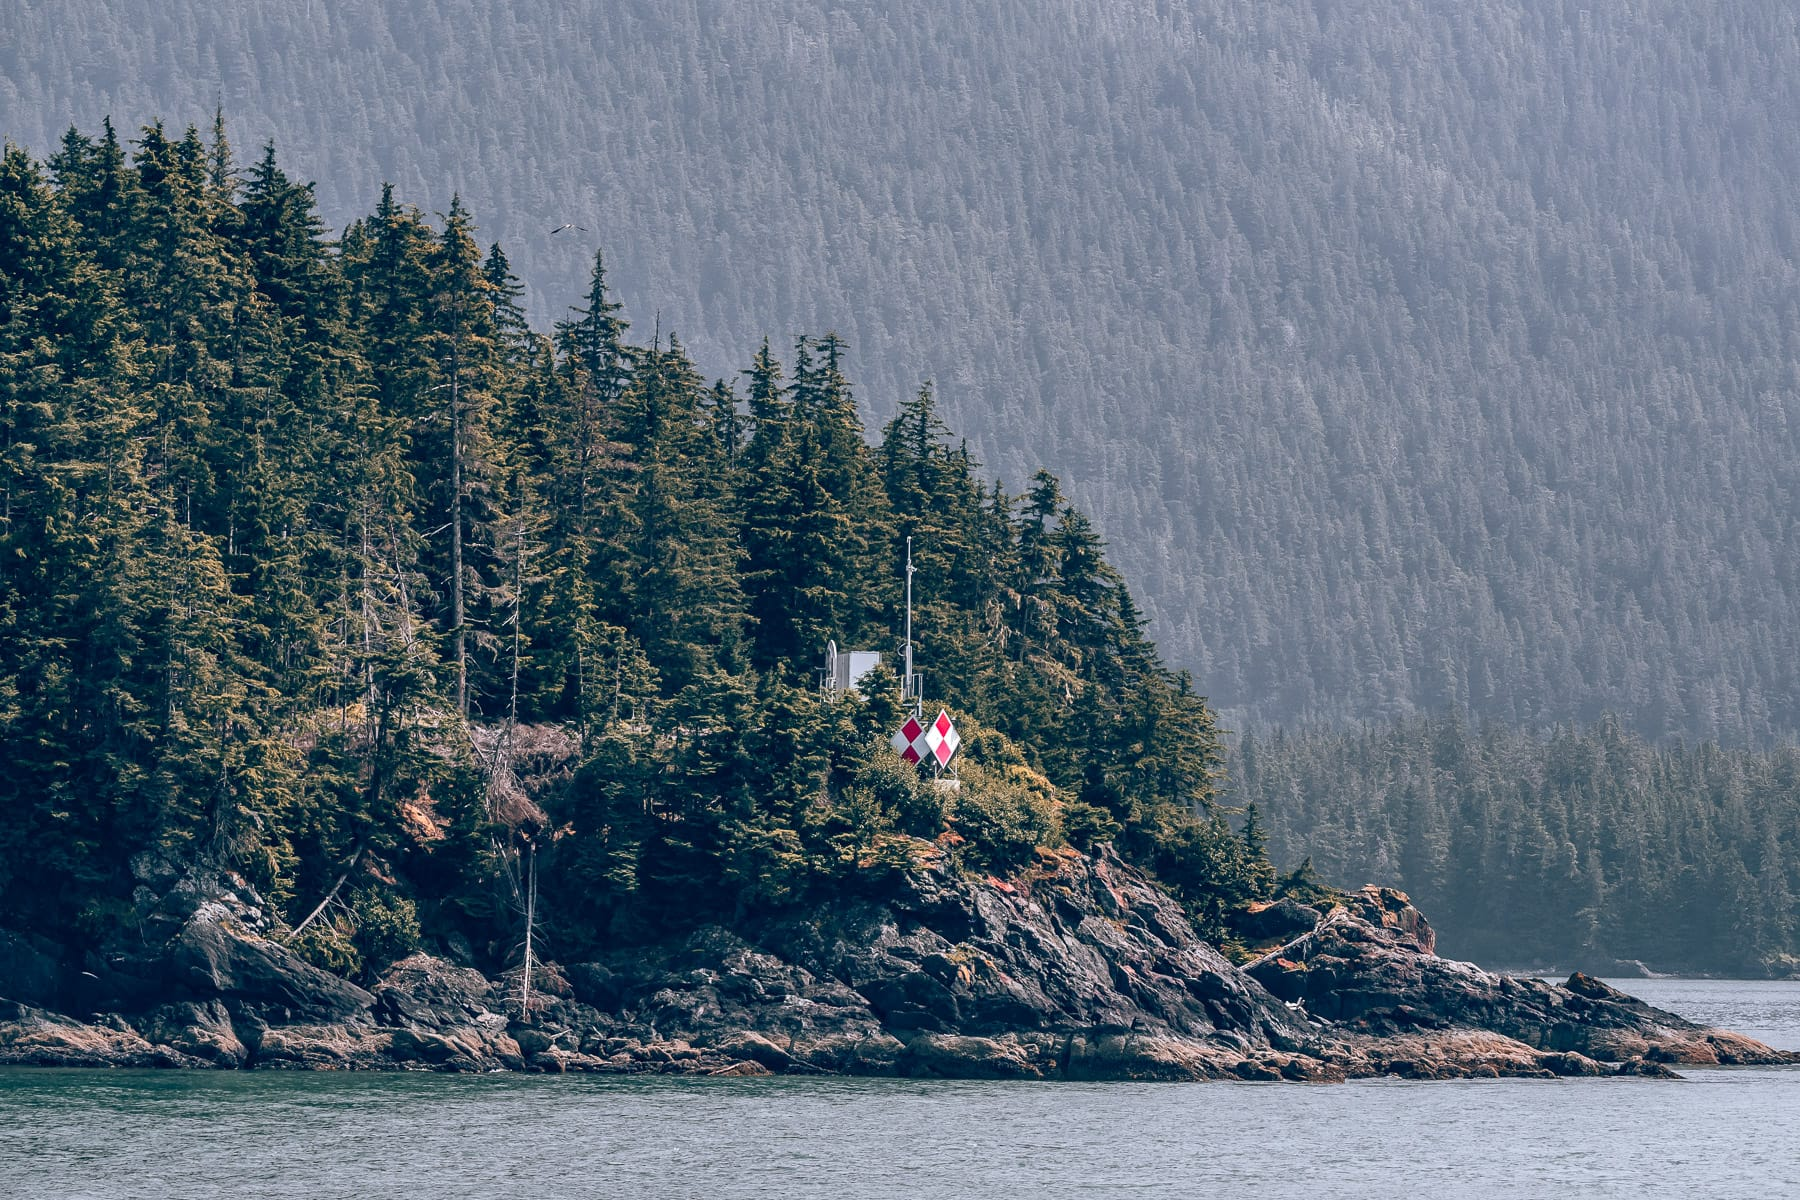 A maritime navigation beacon on a small island in Alaska's Stephens Passage, near Juneau.